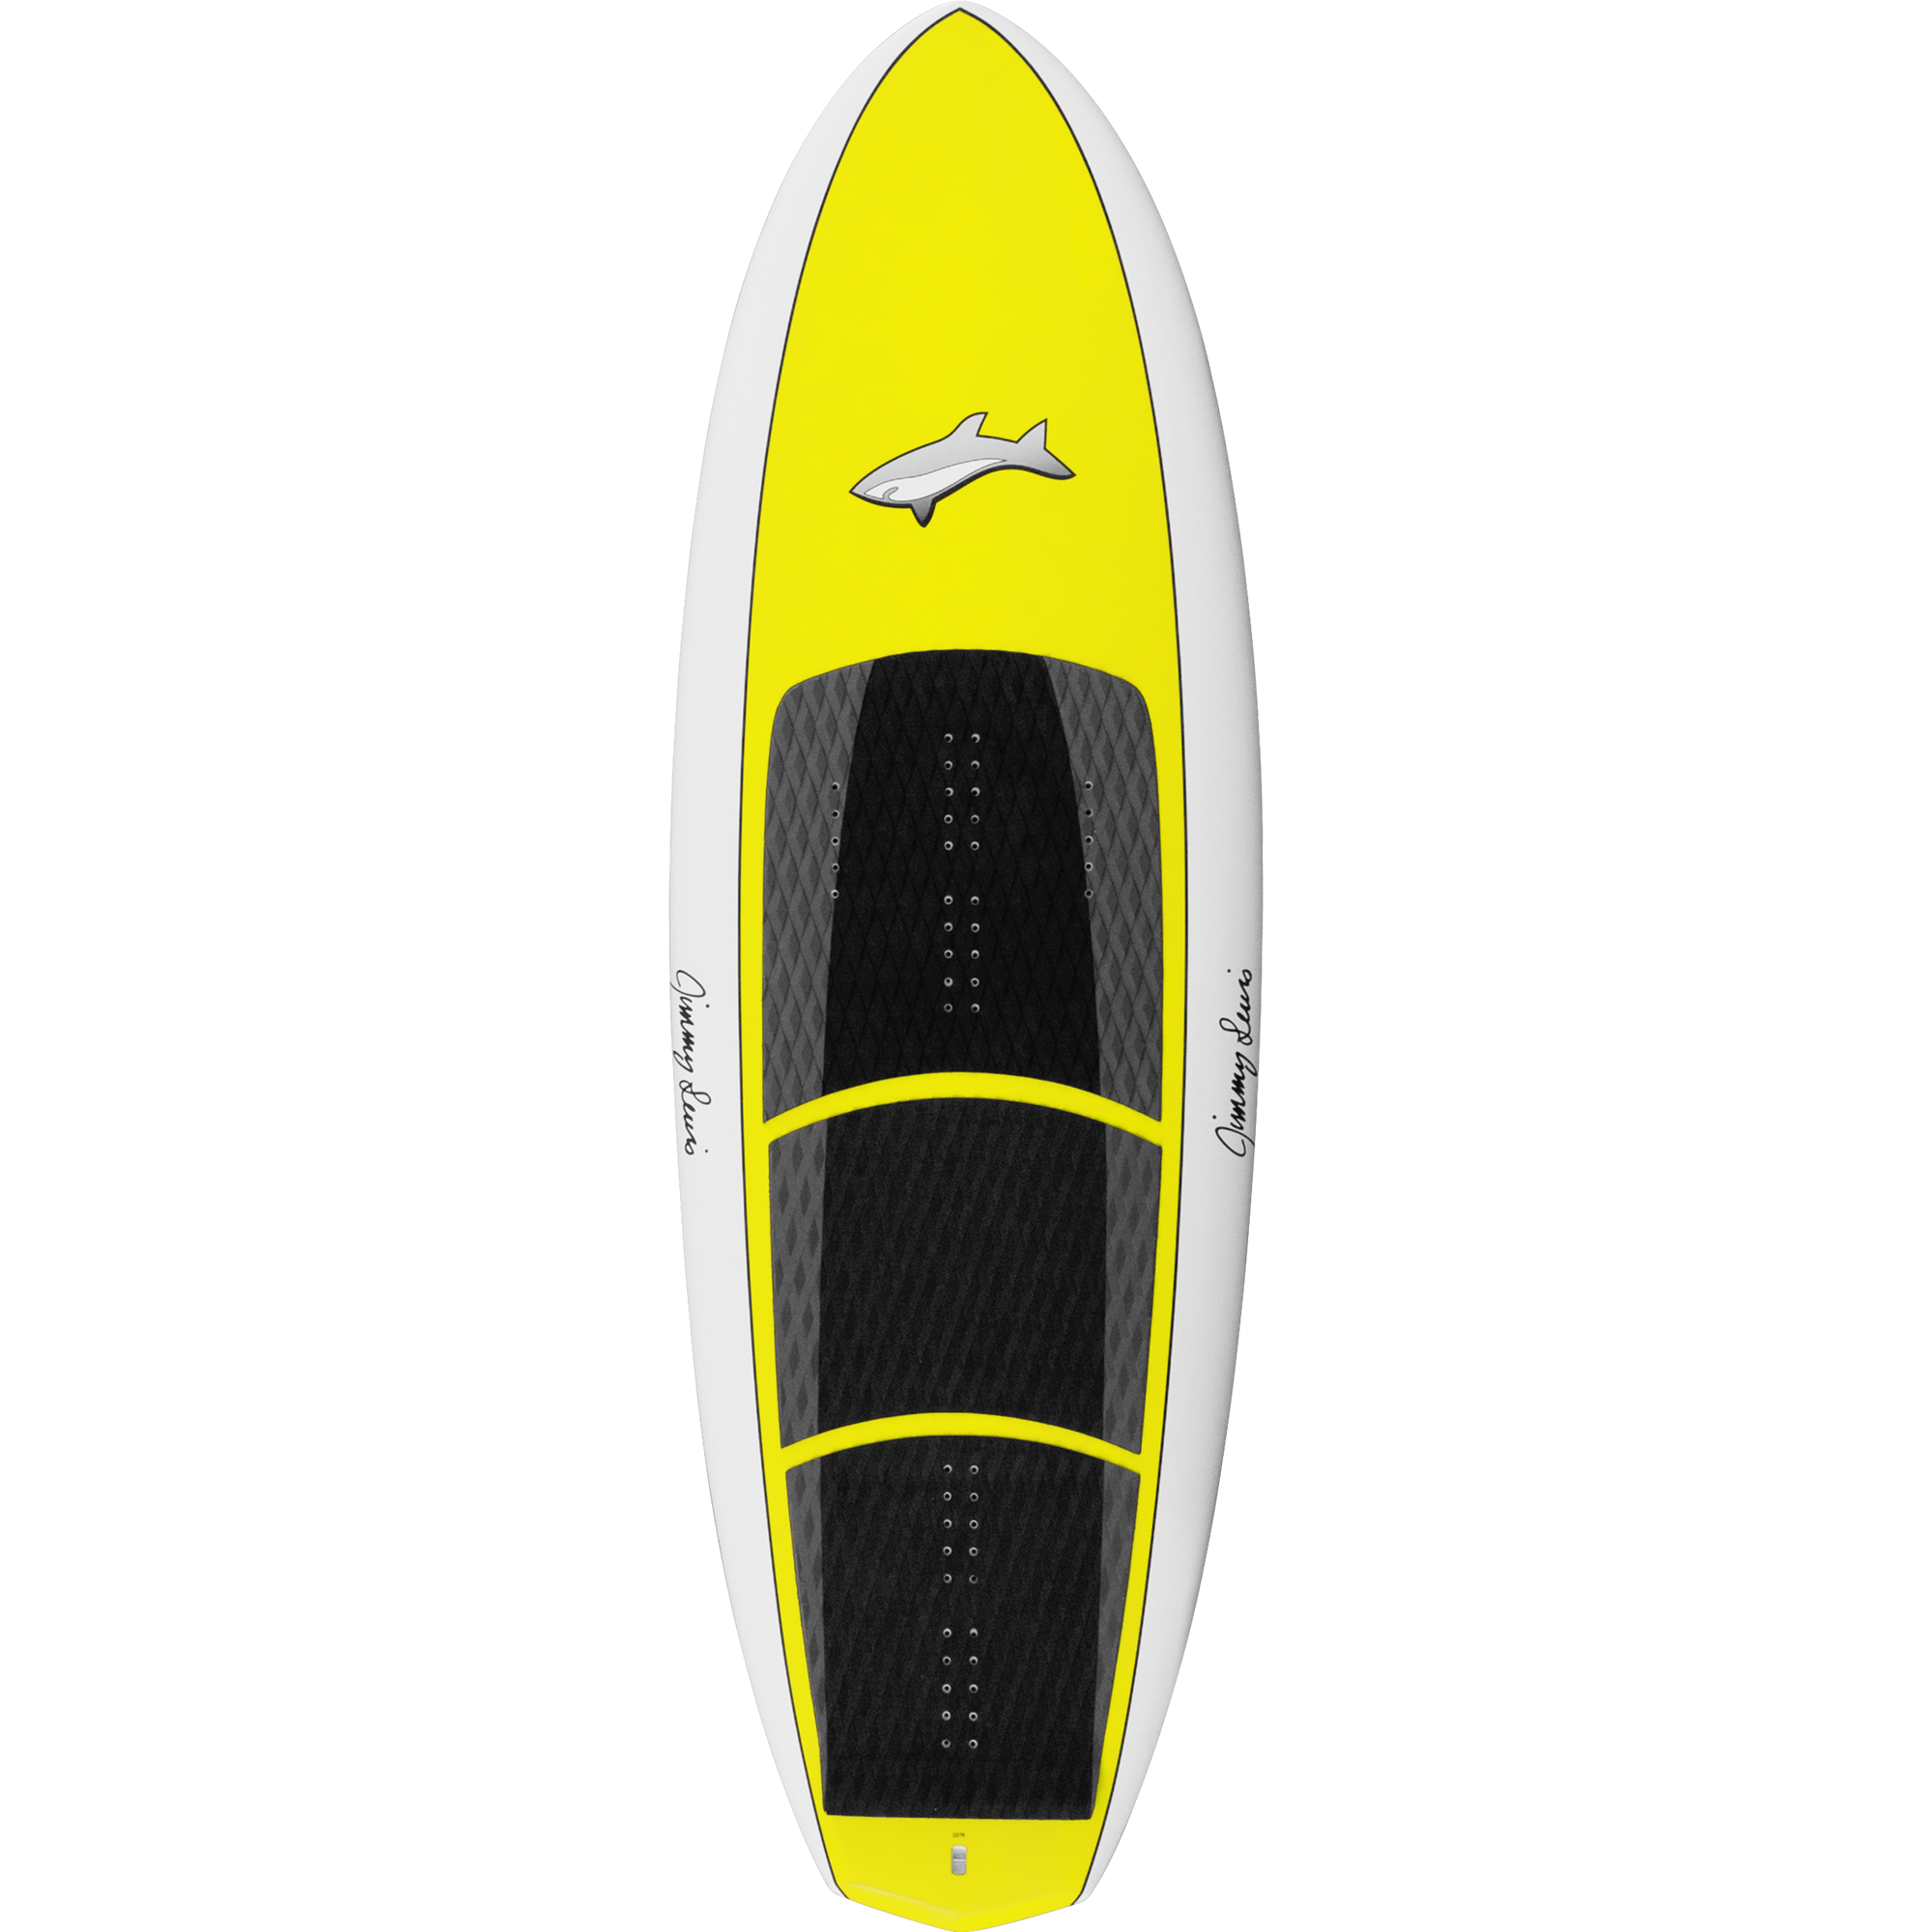 kite-canary-yellow-top